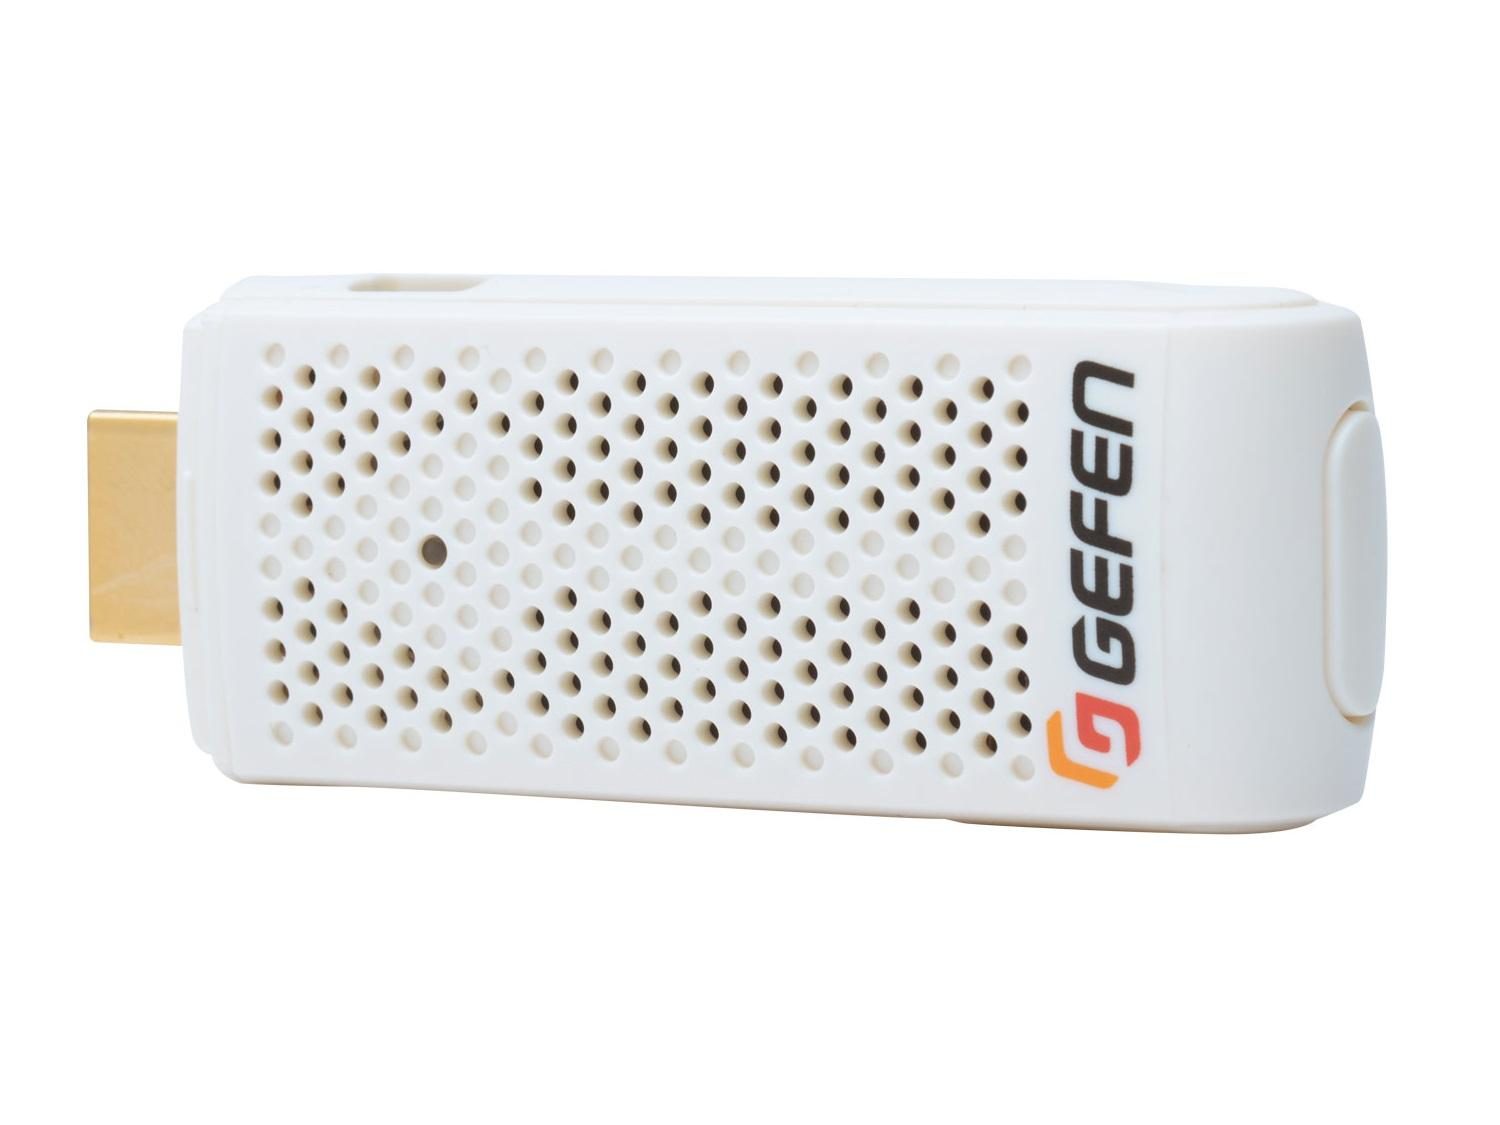 EXT-WHD-1080P-SR-TX-EU Wireless Extender (Transmitter) for HDMI Short Range/for EU by Gefen